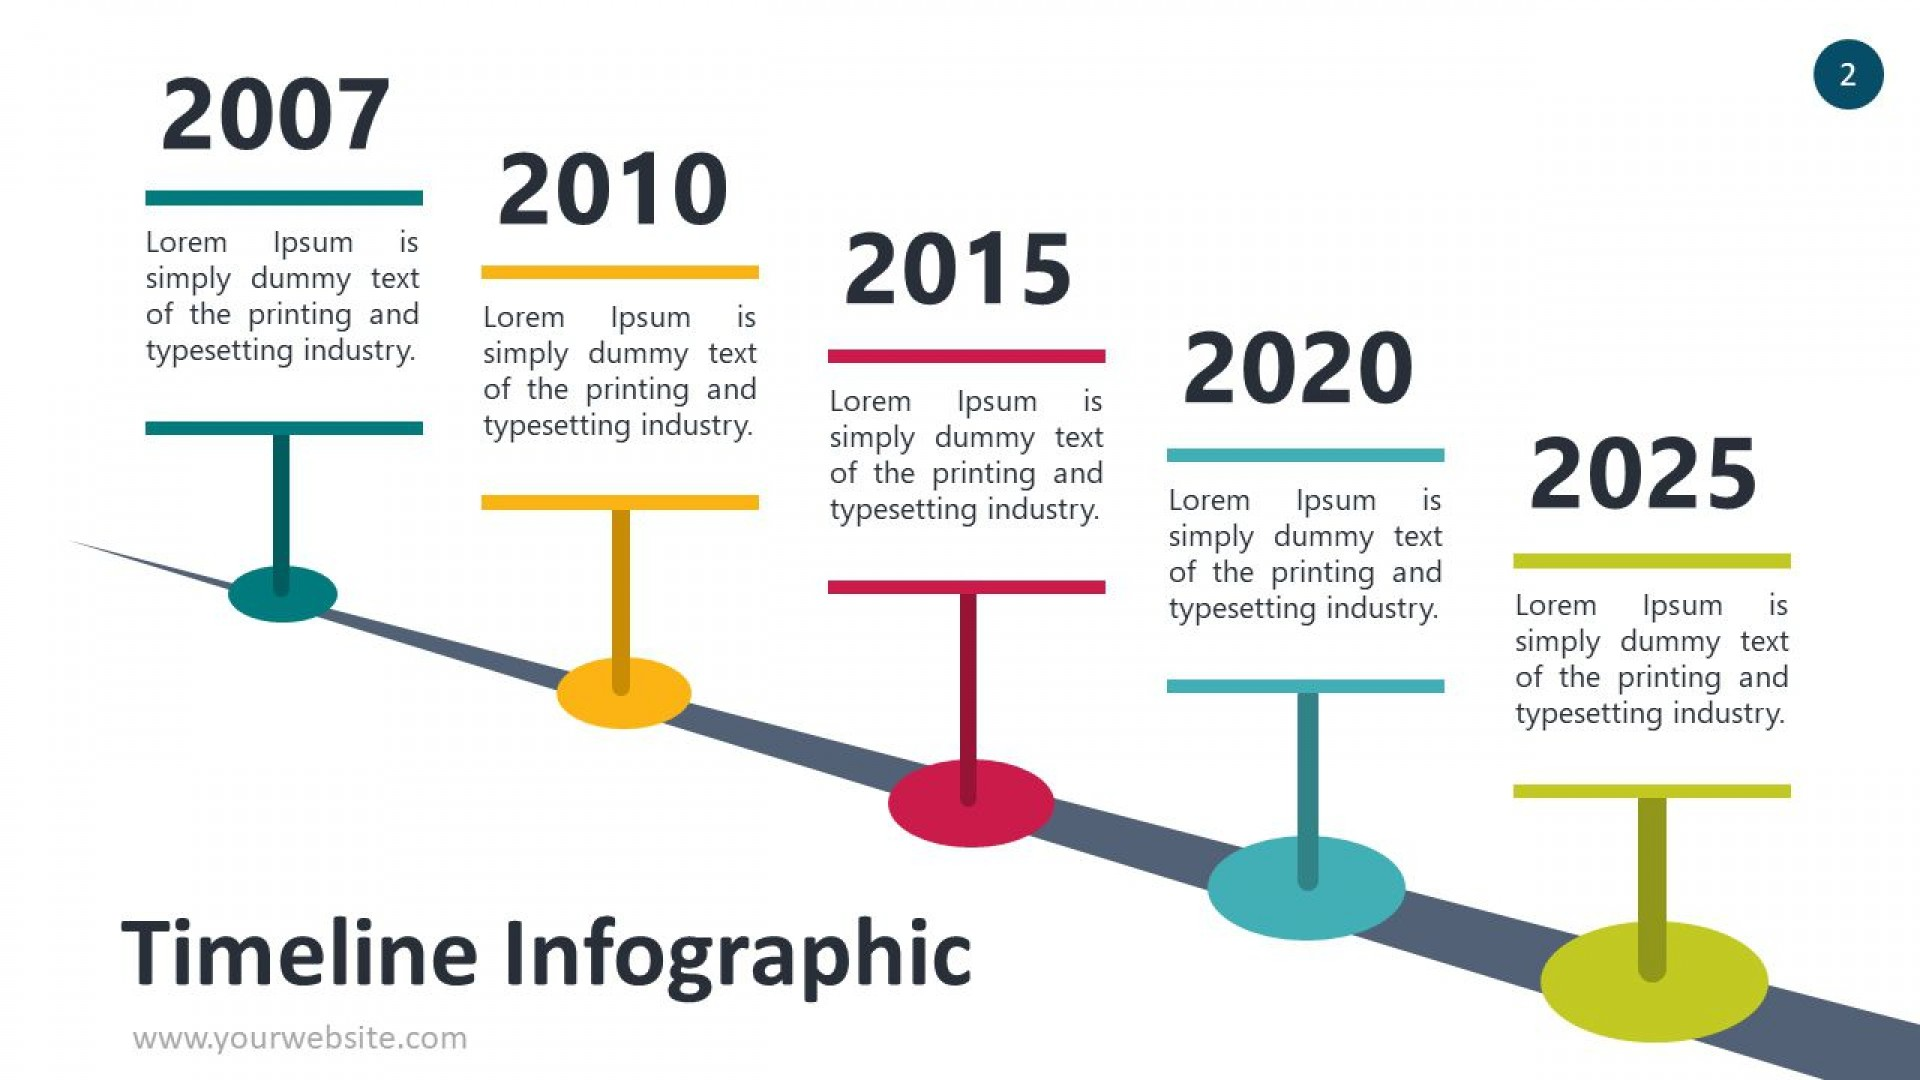 006 Sensational Timeline Infographic Template Powerpoint Download Idea  Free1920